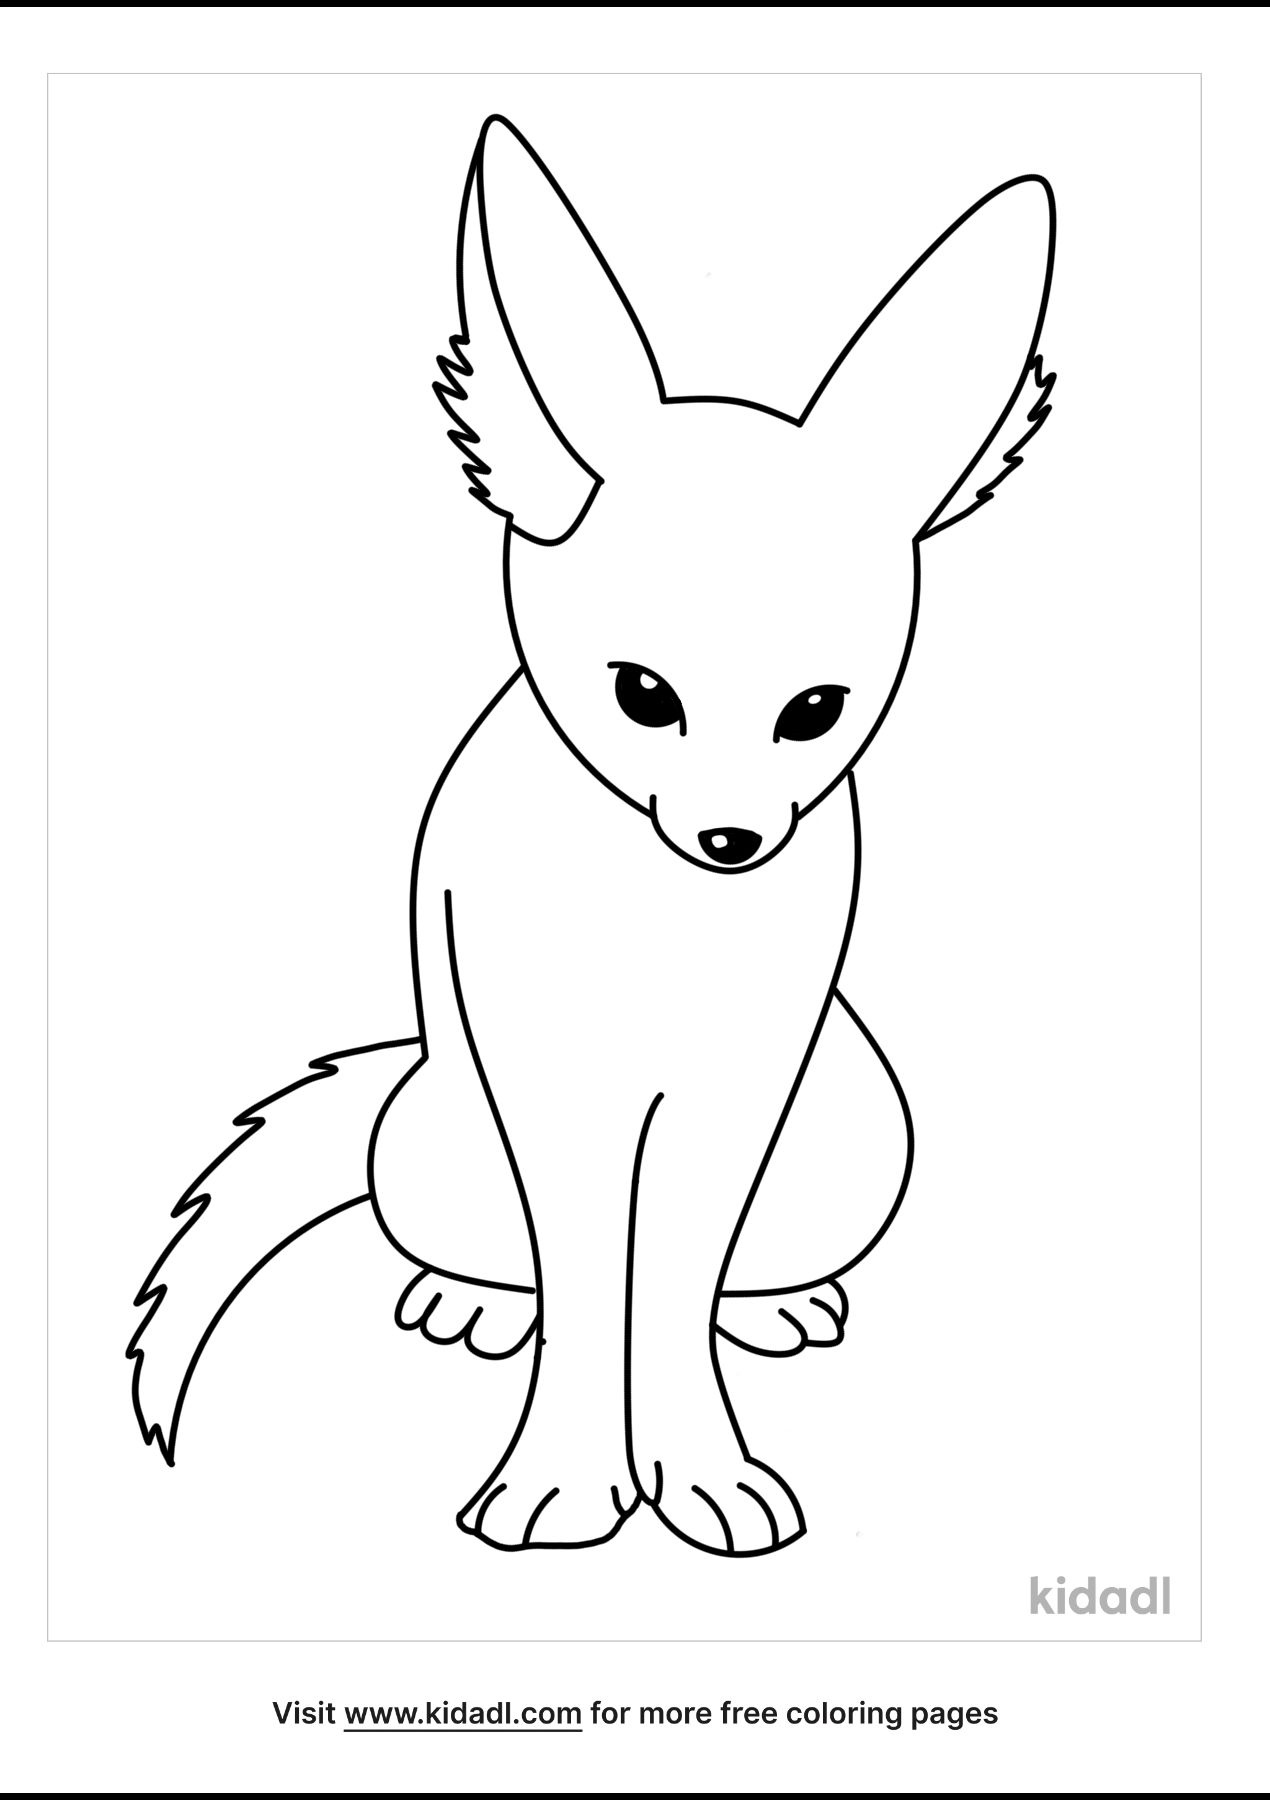 fennec fox coloring free animals kidadl cool cars to color for kids funny names crayons coloring pages Fennec Fox Coloring Page